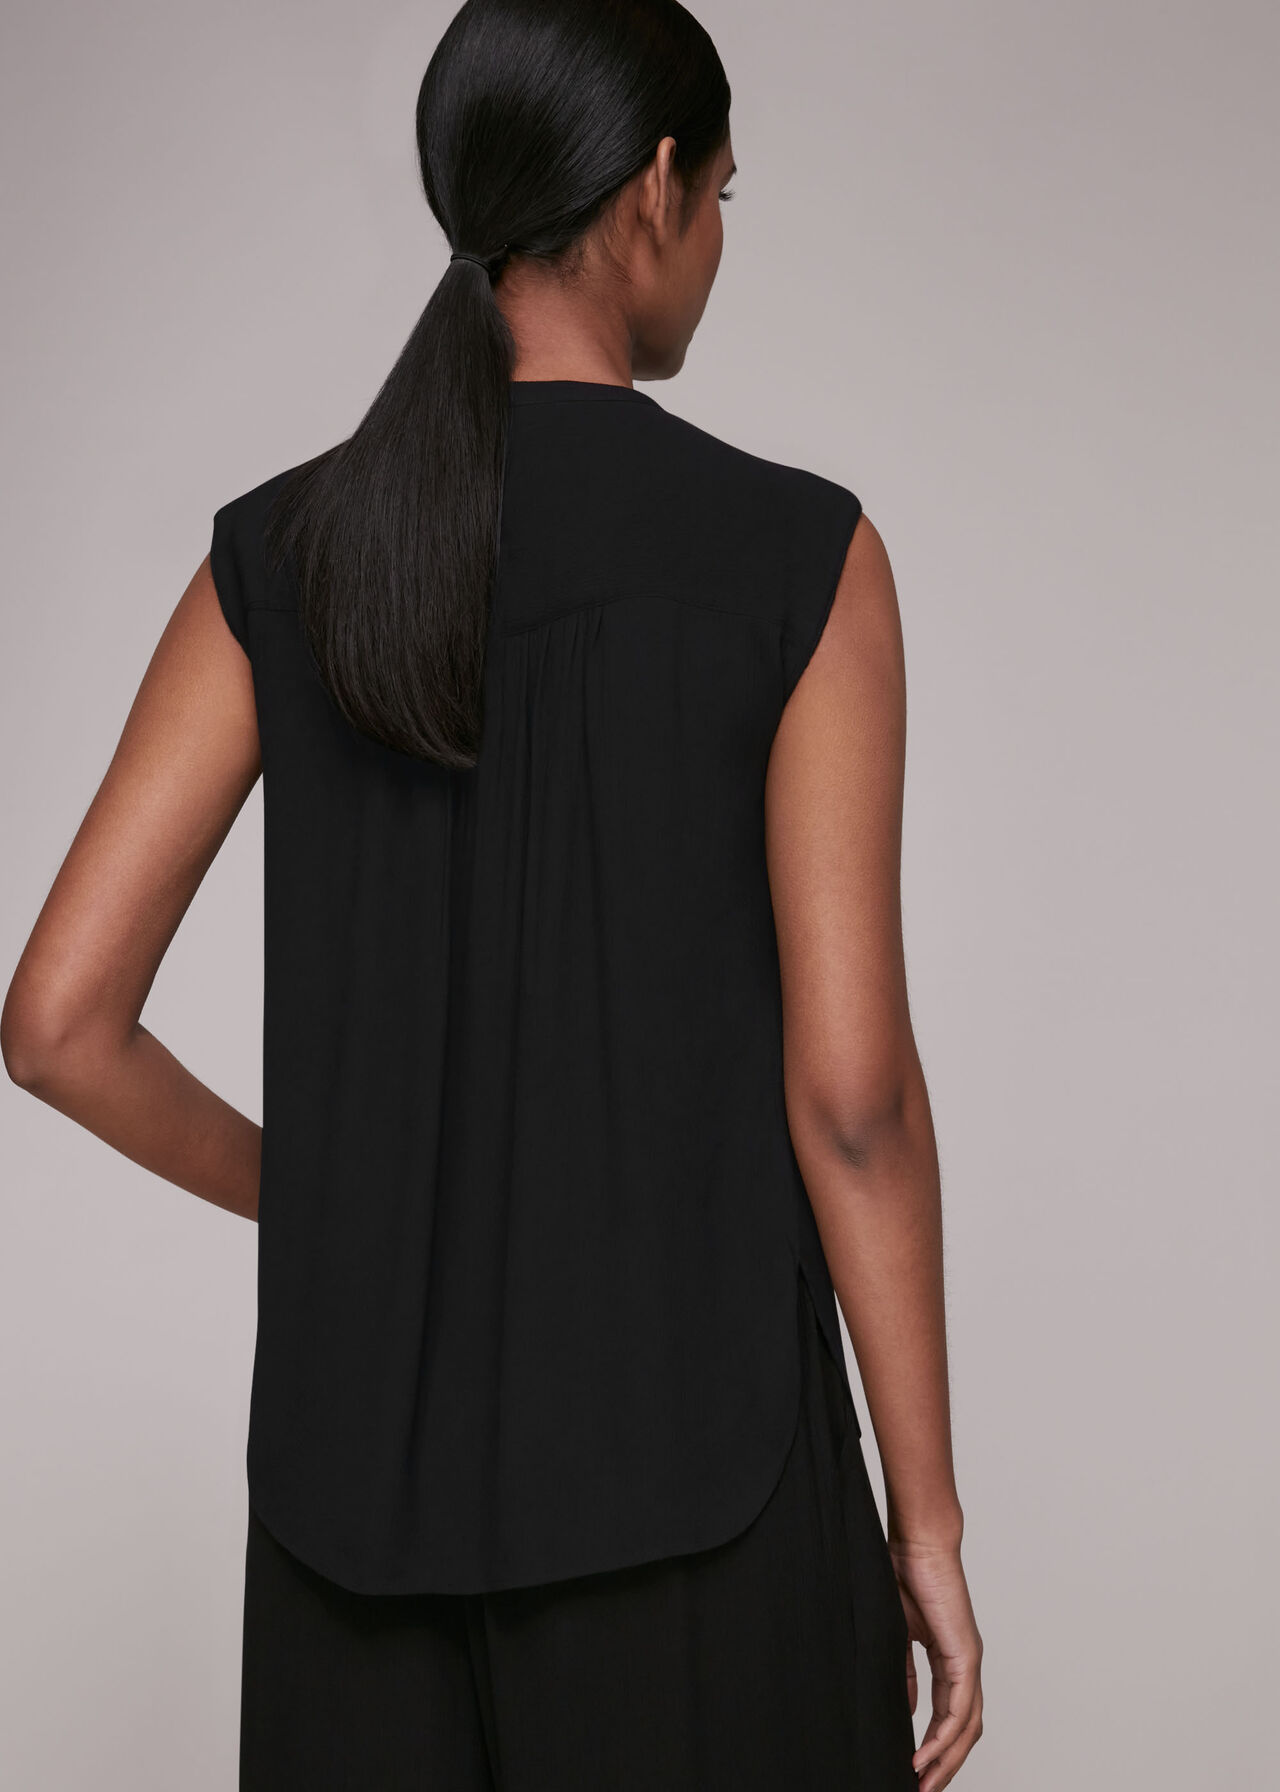 Crinkle Button Front Tank Top